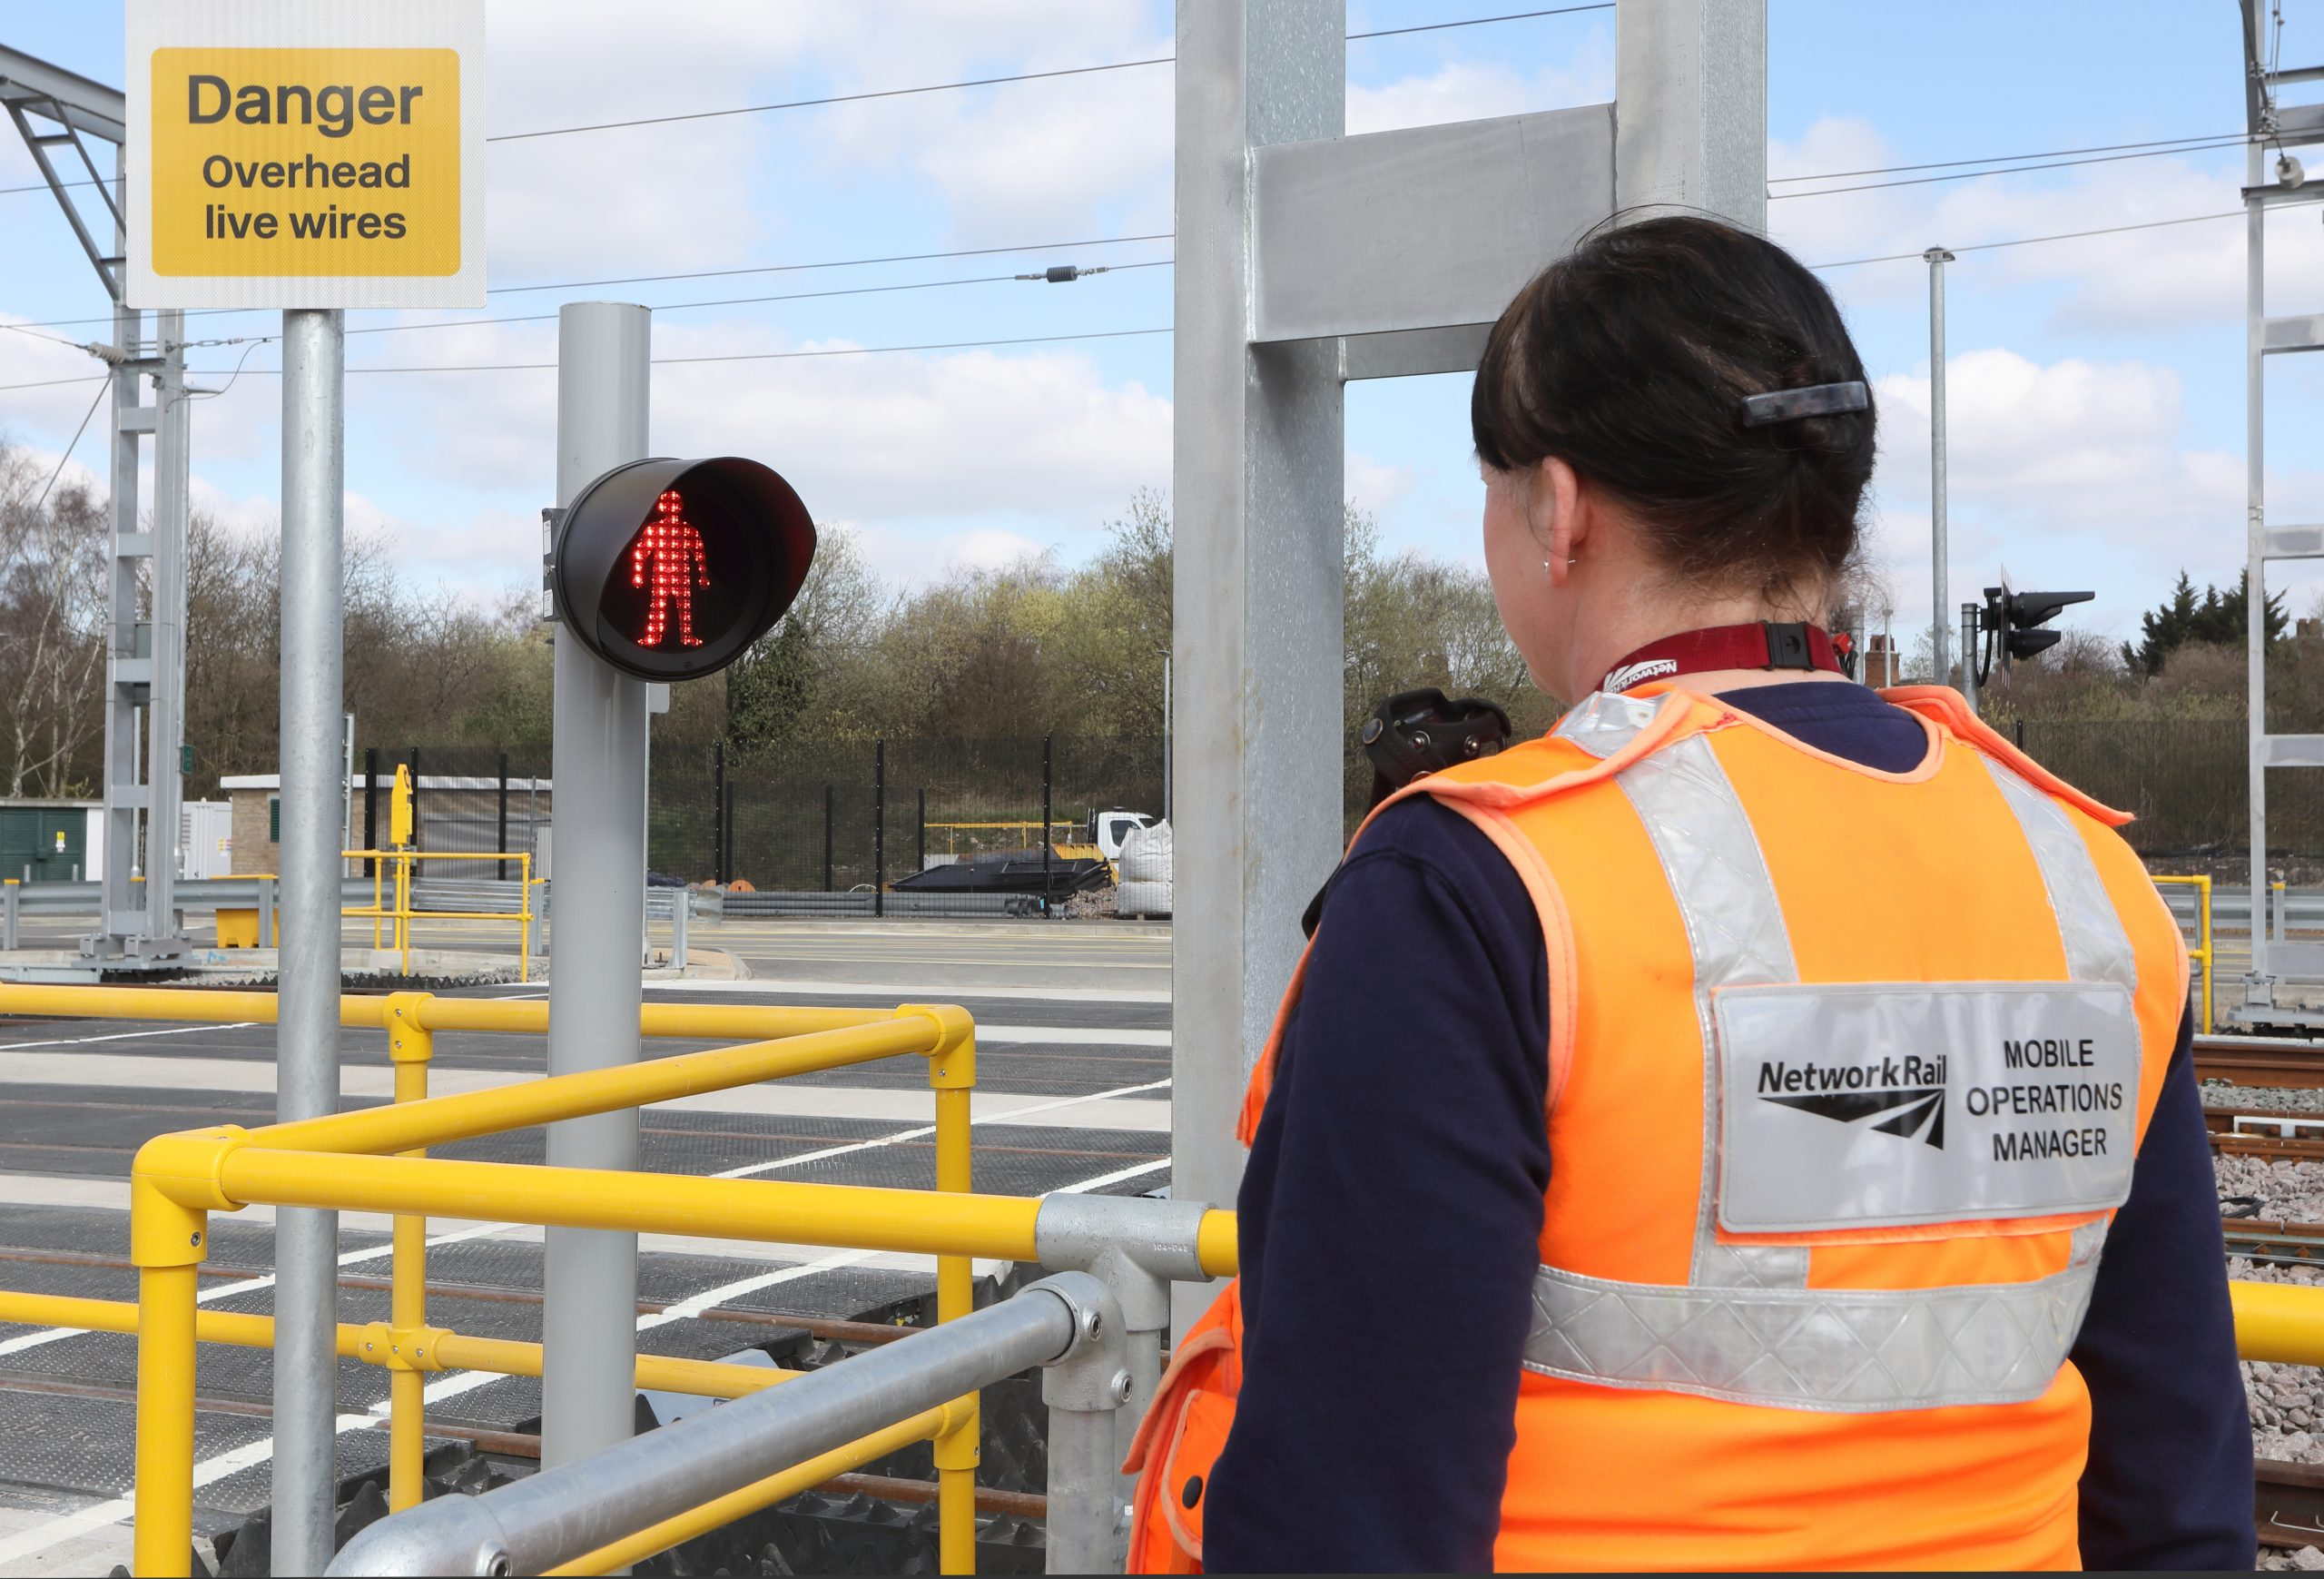 Brent Cross West March 2021 lxxxi New level crossing Network Rail Mobile operations manager Michelle Gull